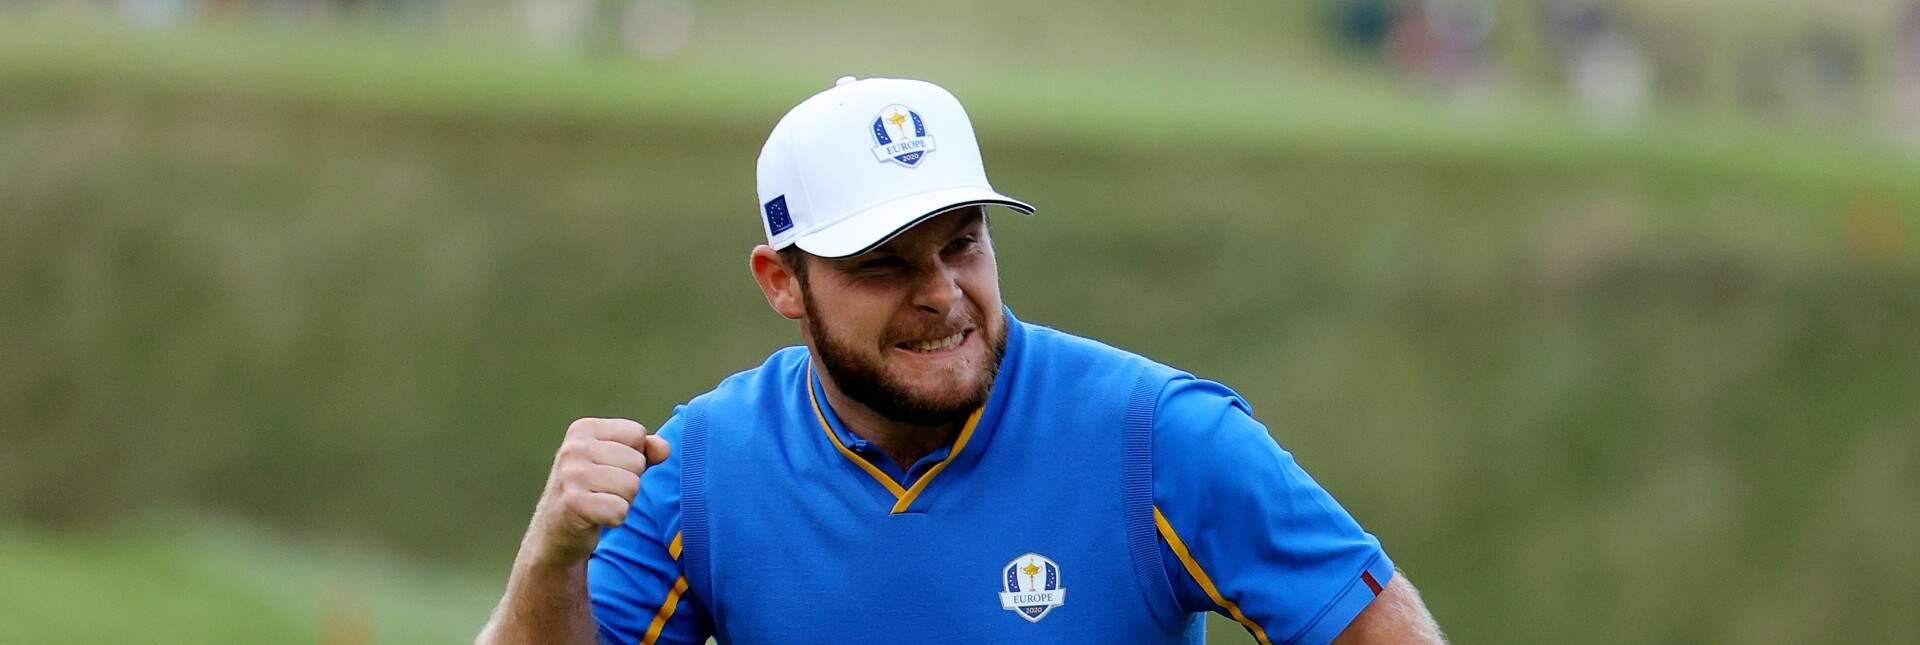 43rd Ryder Cup - Afternoon four-ball Matches